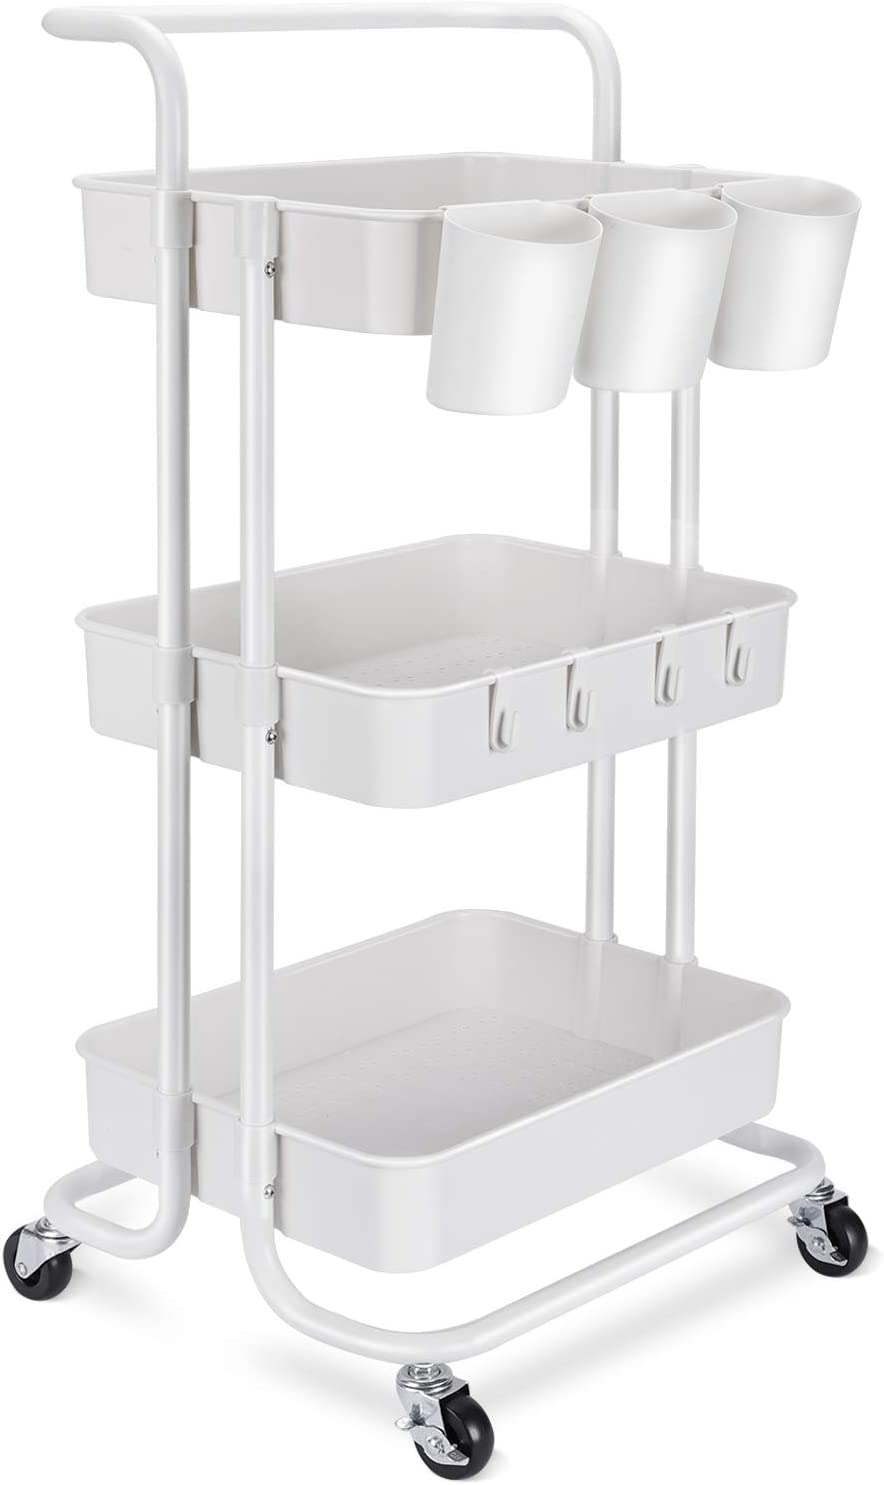 3-Tier Rolling Mobile Utility Cart with Hanging Cups & Hooks & Handle Multifunctional Organizer Storage Trolley Service Cart with Wheels Easy Assembly for Office, Bathroom, Kitchen (White)